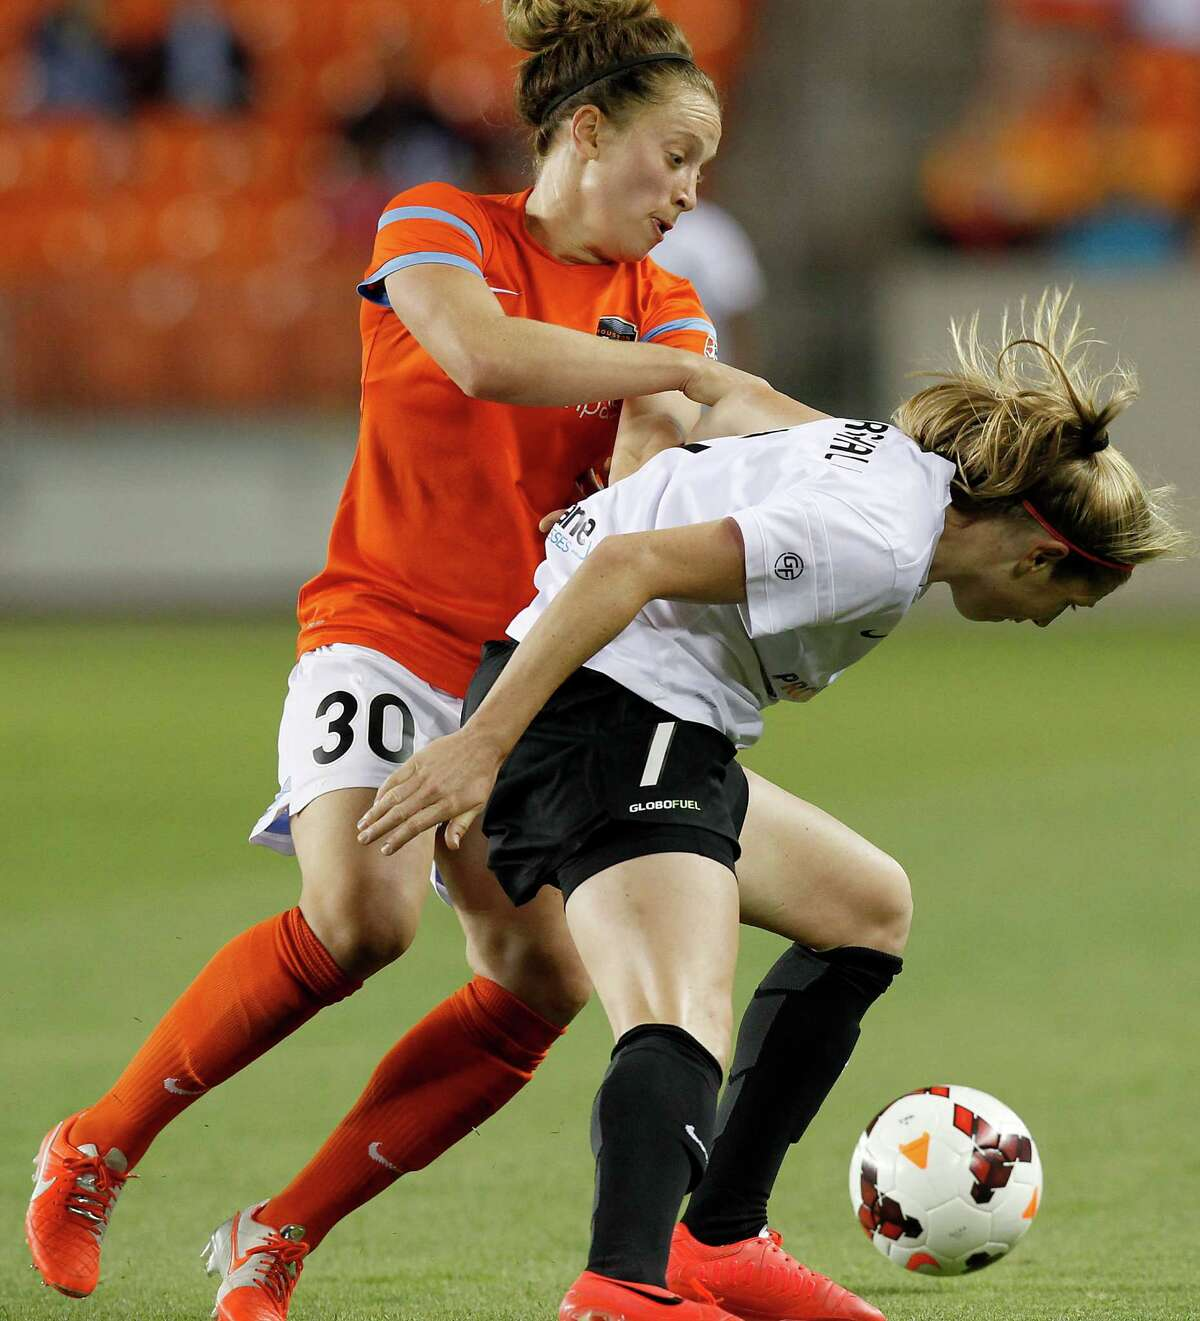 Houston Dash Ella Masar (30 has trouble going around Portland Thorns Nikkin Marshall (7) in the second half on May 14, 2014 at BBVA Compass Stadium in Houston, TX. Portland won 1 to 0. (Photo: Thomas B. Shea/For the Chronicle)